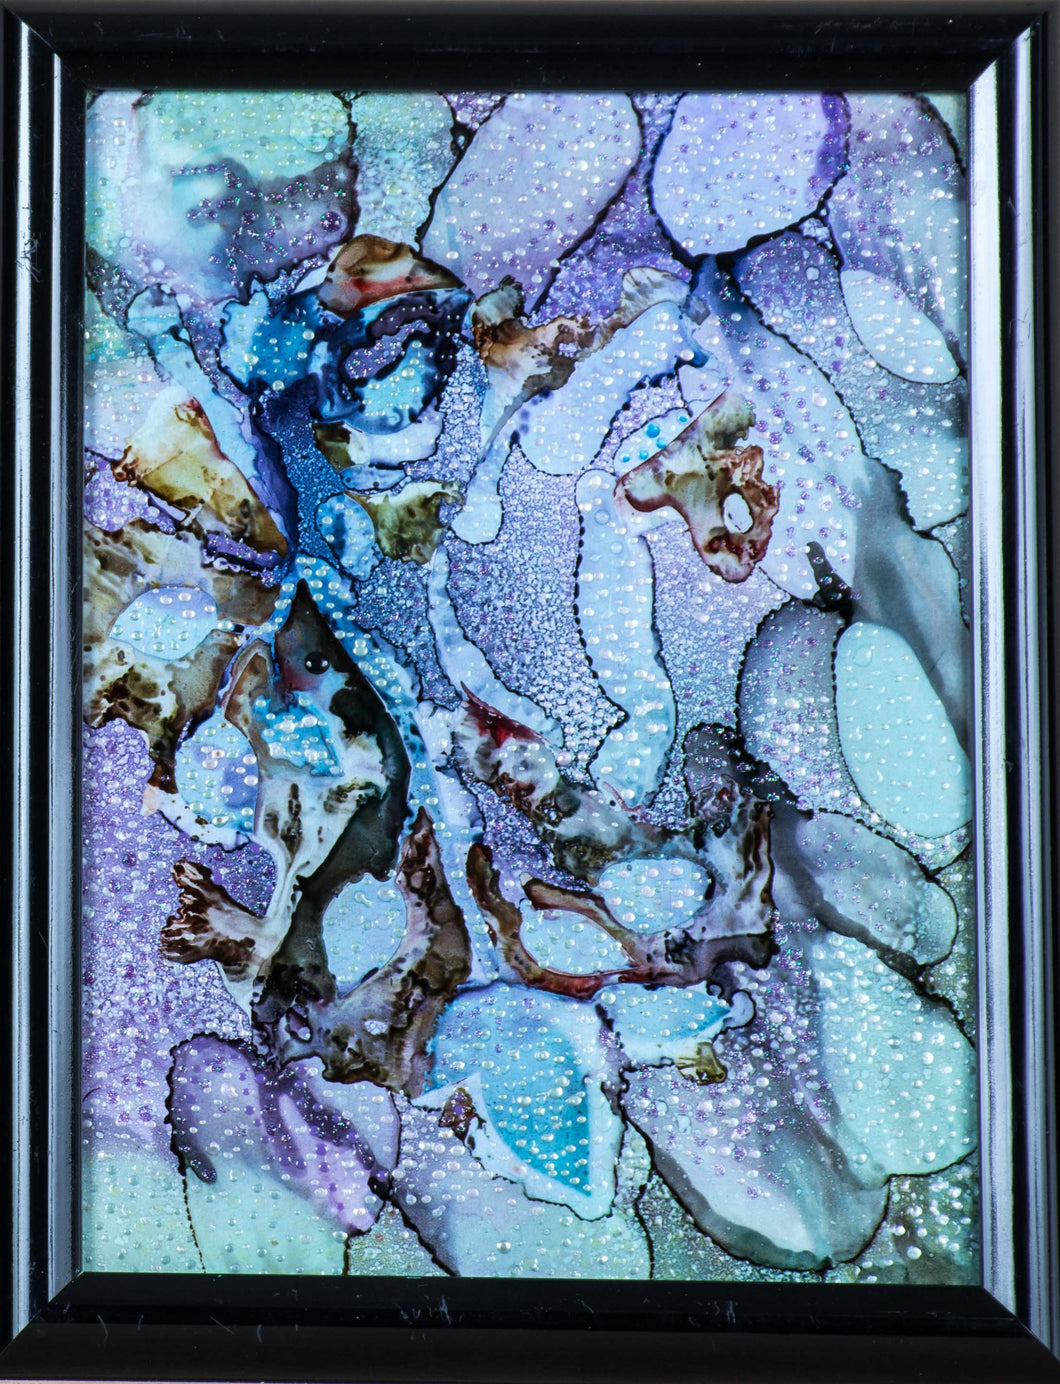 An alkyd abstract purple, blue, and green cavern filled with crystals and water.